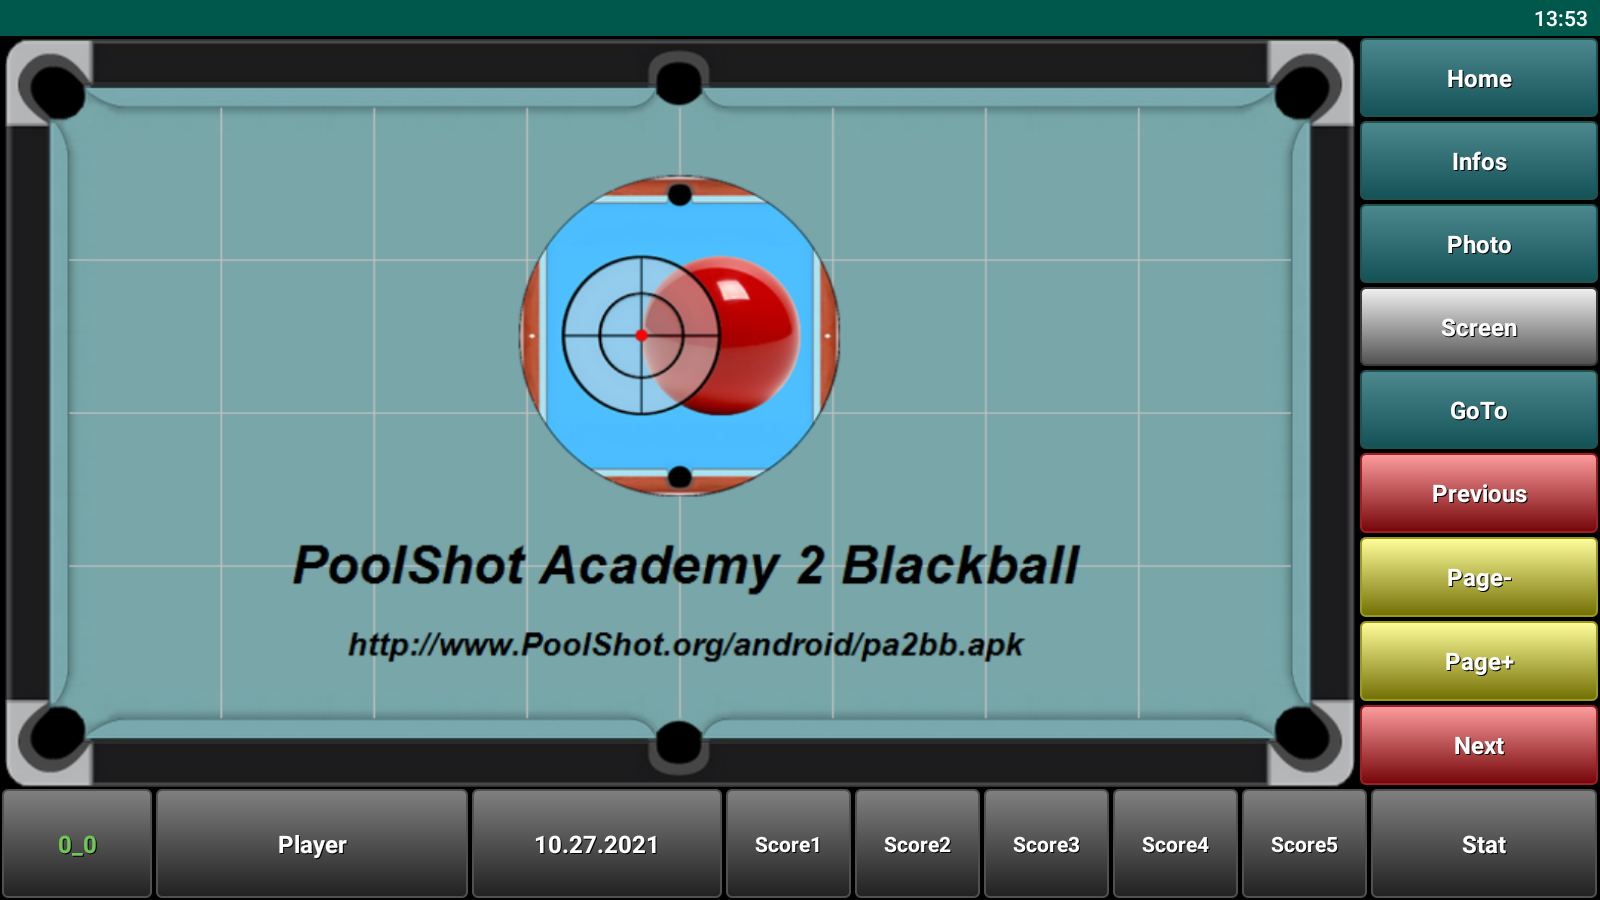 Download PoolShot Academy 2 Blackball Android App